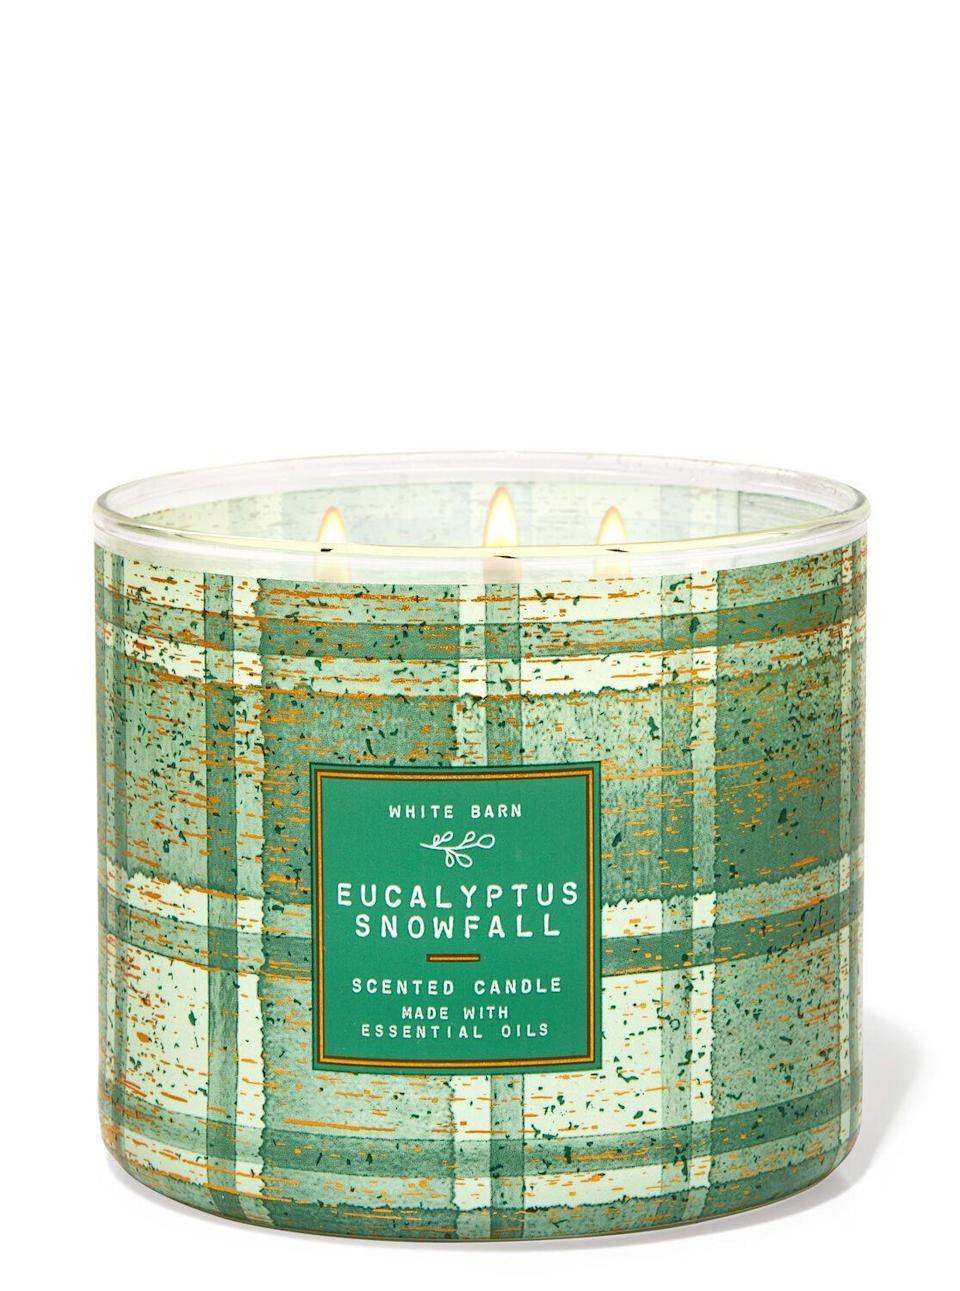 "<p><strong>Bath & Body Works</strong></p><p>bathandbodyworks.com</p><p><strong>$24.50</strong></p><p><a href=""https://www.bathandbodyworks.com/p/eucalyptus-snowfall-3-wick-candle-026178777.html"" rel=""nofollow noopener"" target=""_blank"" data-ylk=""slk:Shop Now"" class=""link rapid-noclick-resp"">Shop Now</a></p><p>Are there better candles at Bath & Body Works? Yes. Will you regret this one? Absolutely not. I'm sure your S.O.'s mom is going to looooove it. </p>"